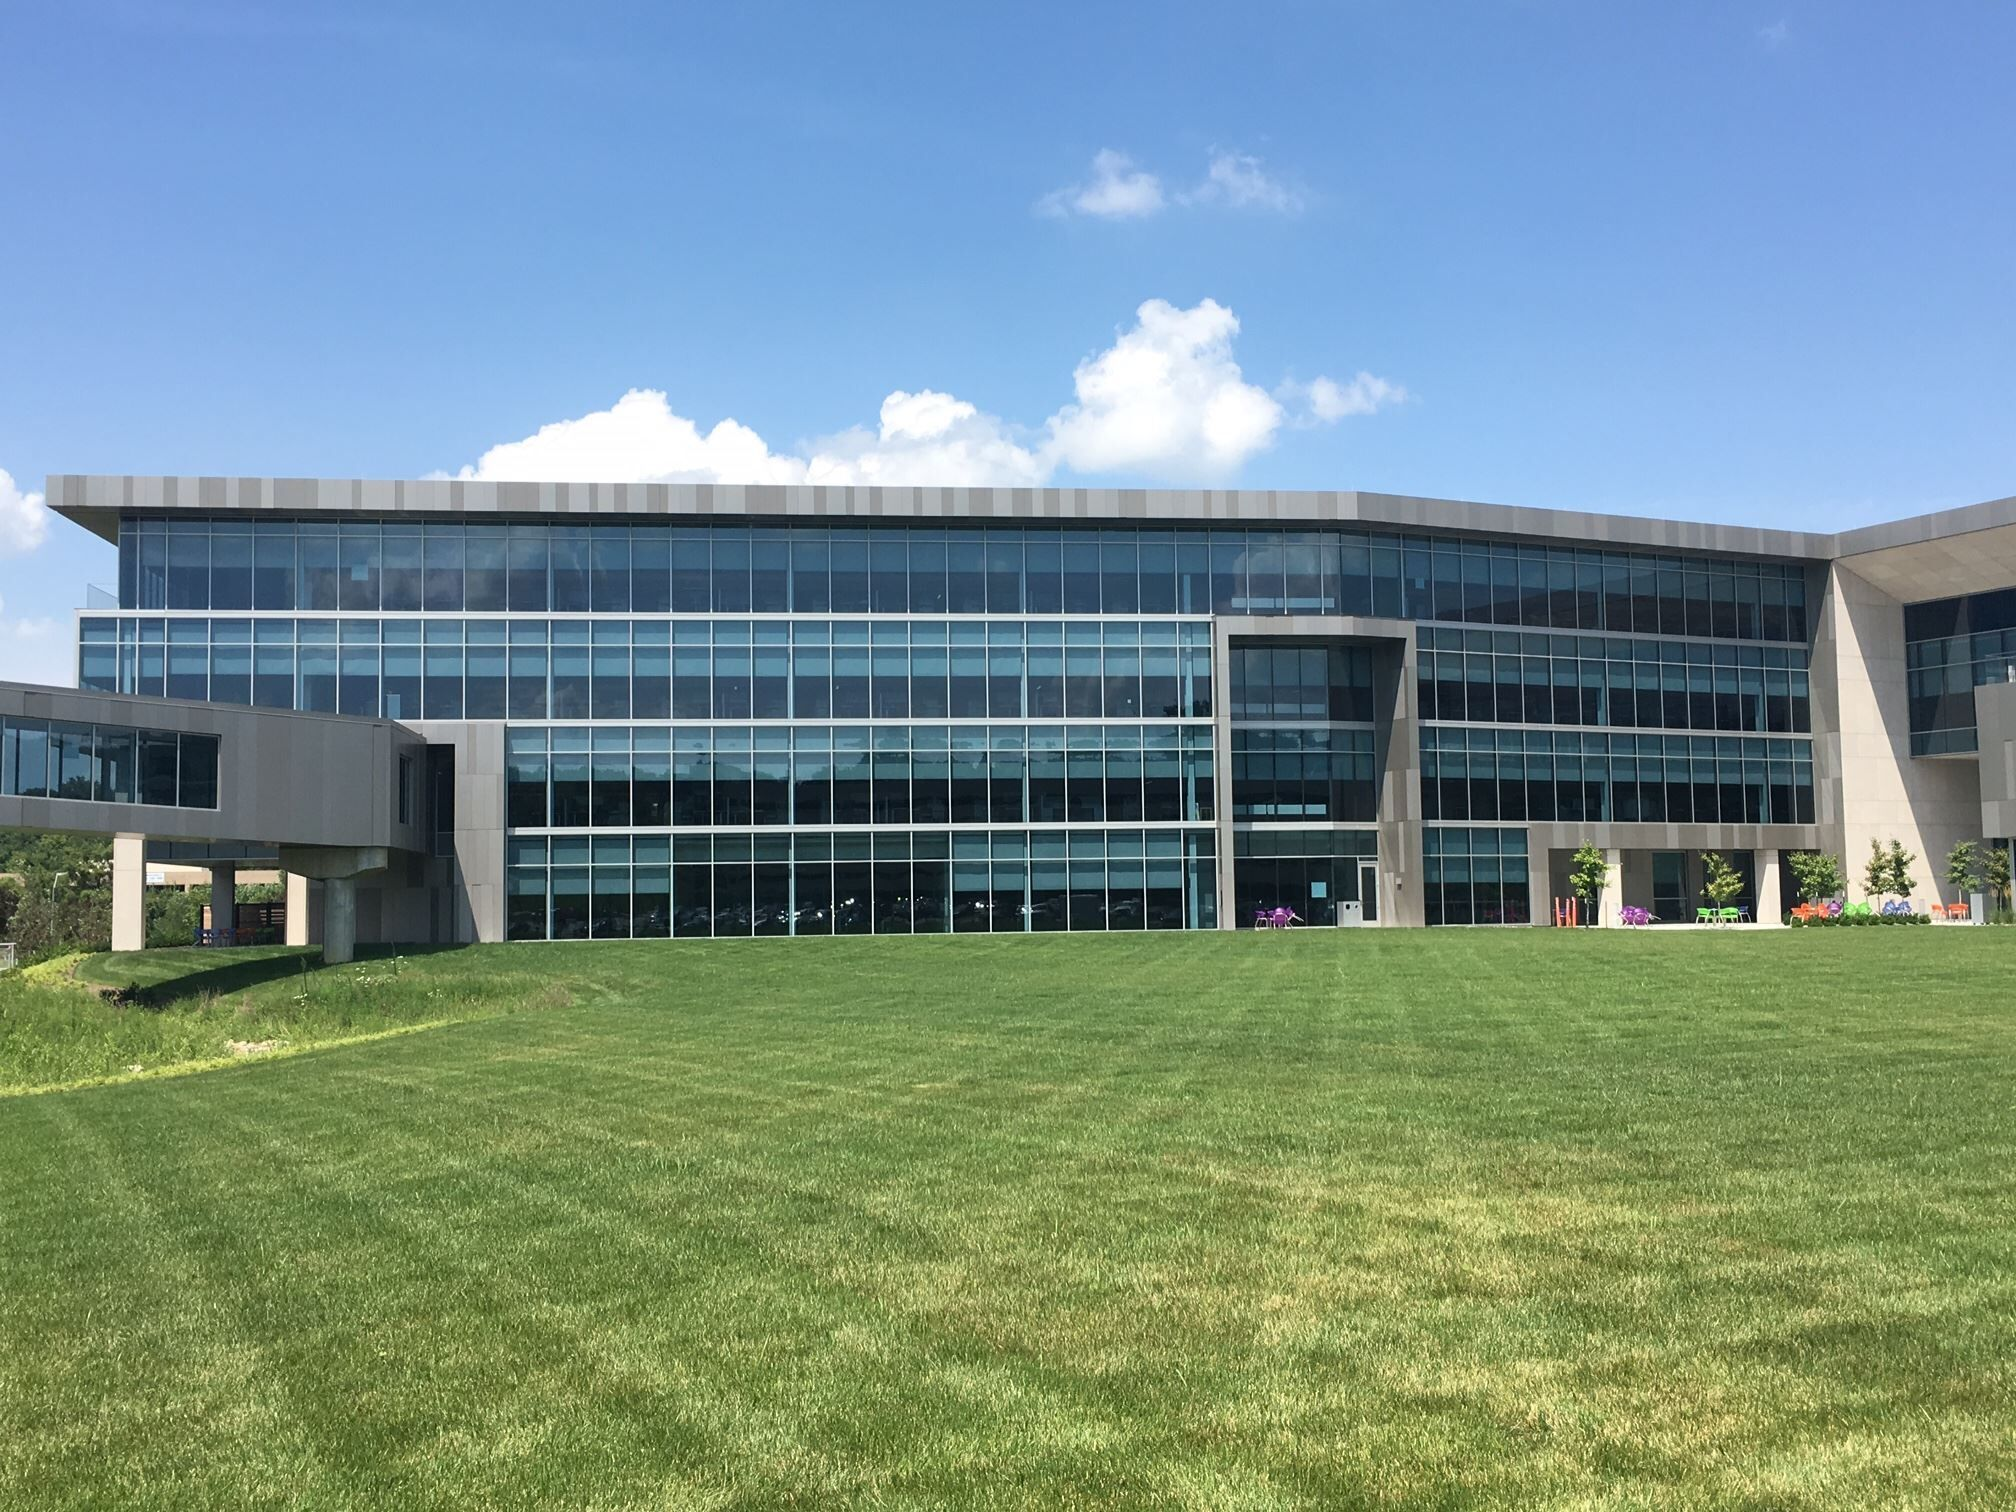 Burns & McDonnell Corporate Office